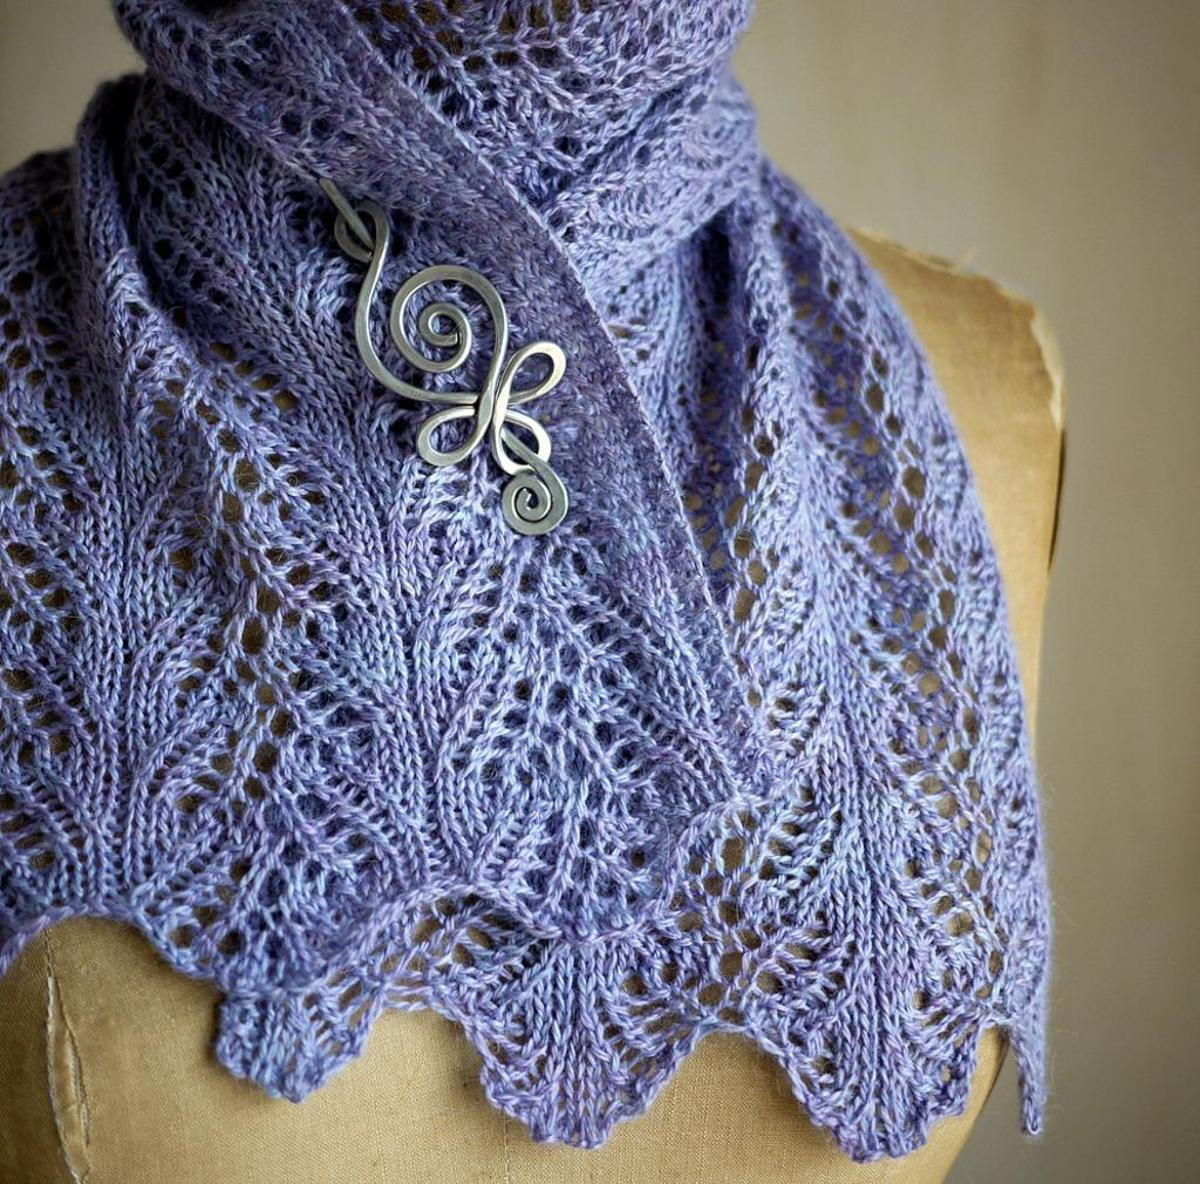 Aria Delicato Scarf Knitting Kit Featuring Mrs Crosby